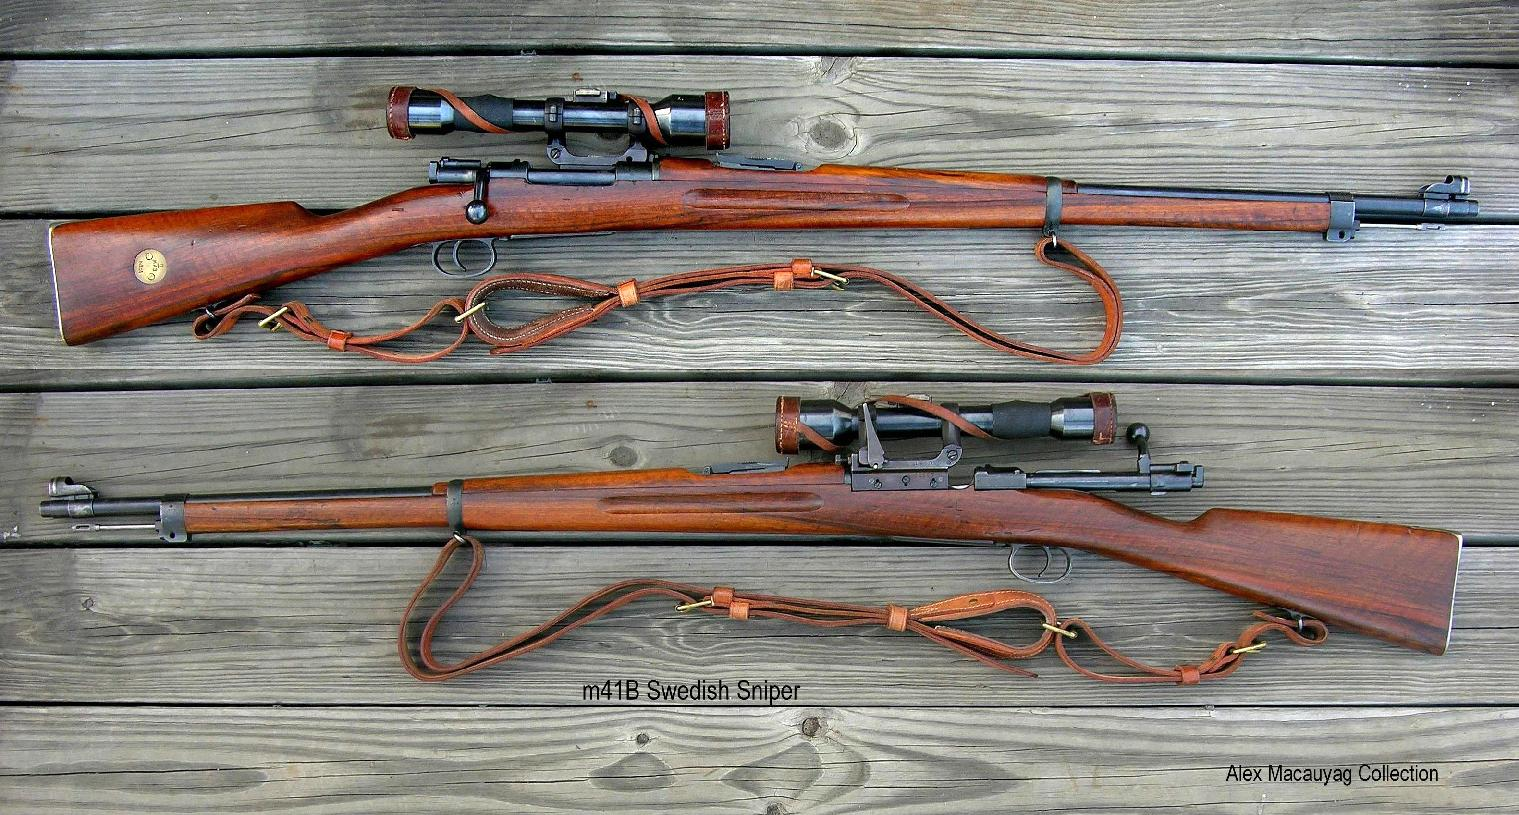 dating mauser Hey guys, i have this old mauser 22 lr single shot rifle that was my grandpa used to use in nra competitions i really don't know much about it as he died w.